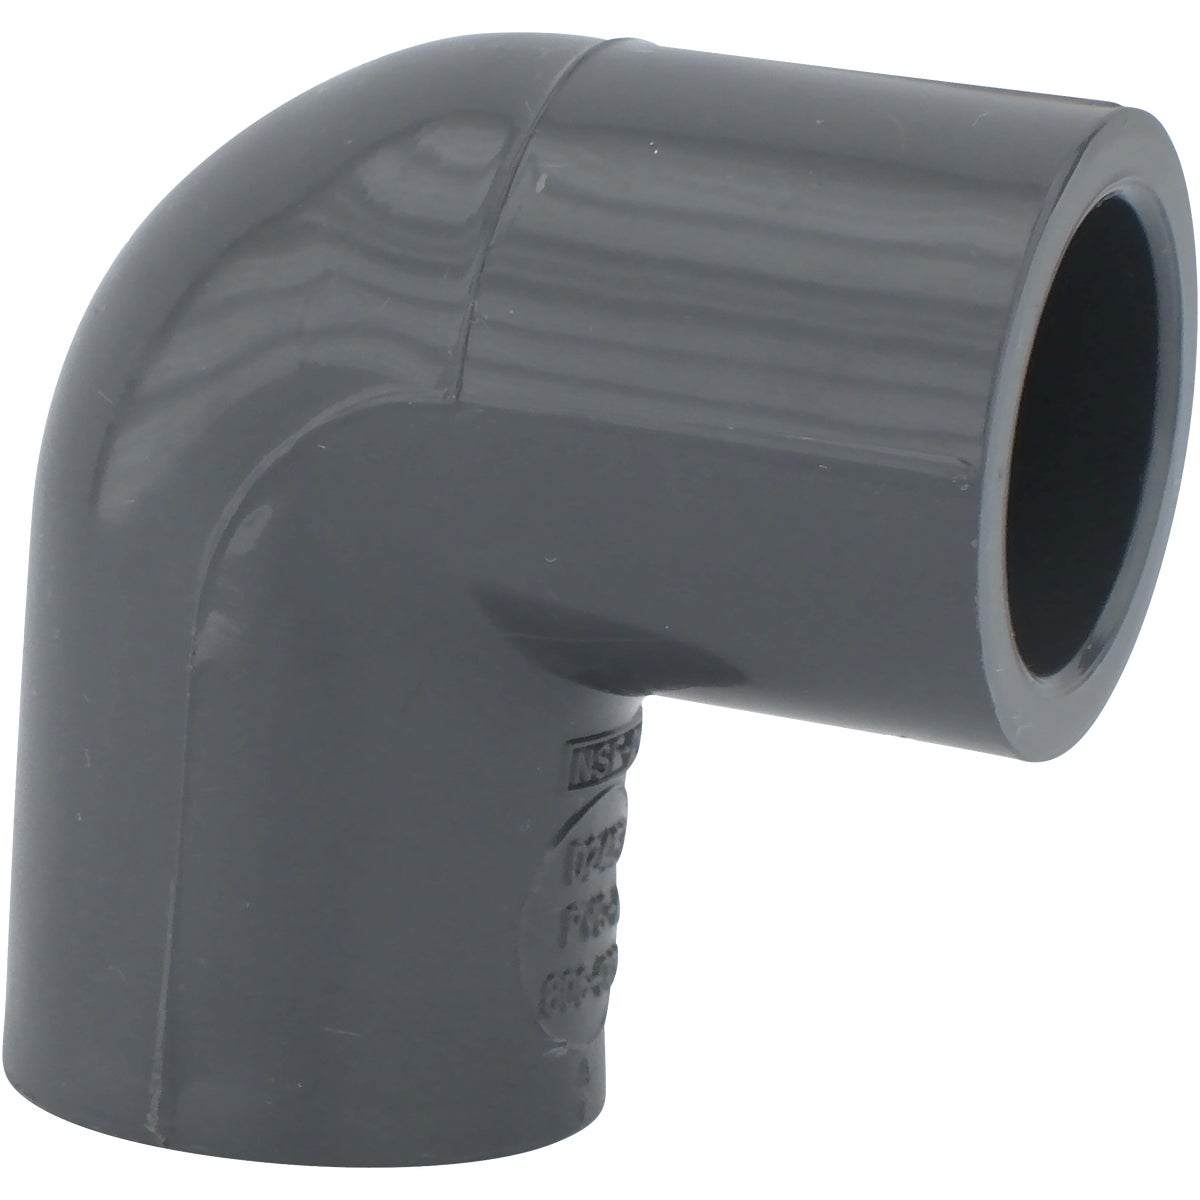 "1/2"" 90D SCH80 PVC ELBOW - 307058 by Genova Inc"